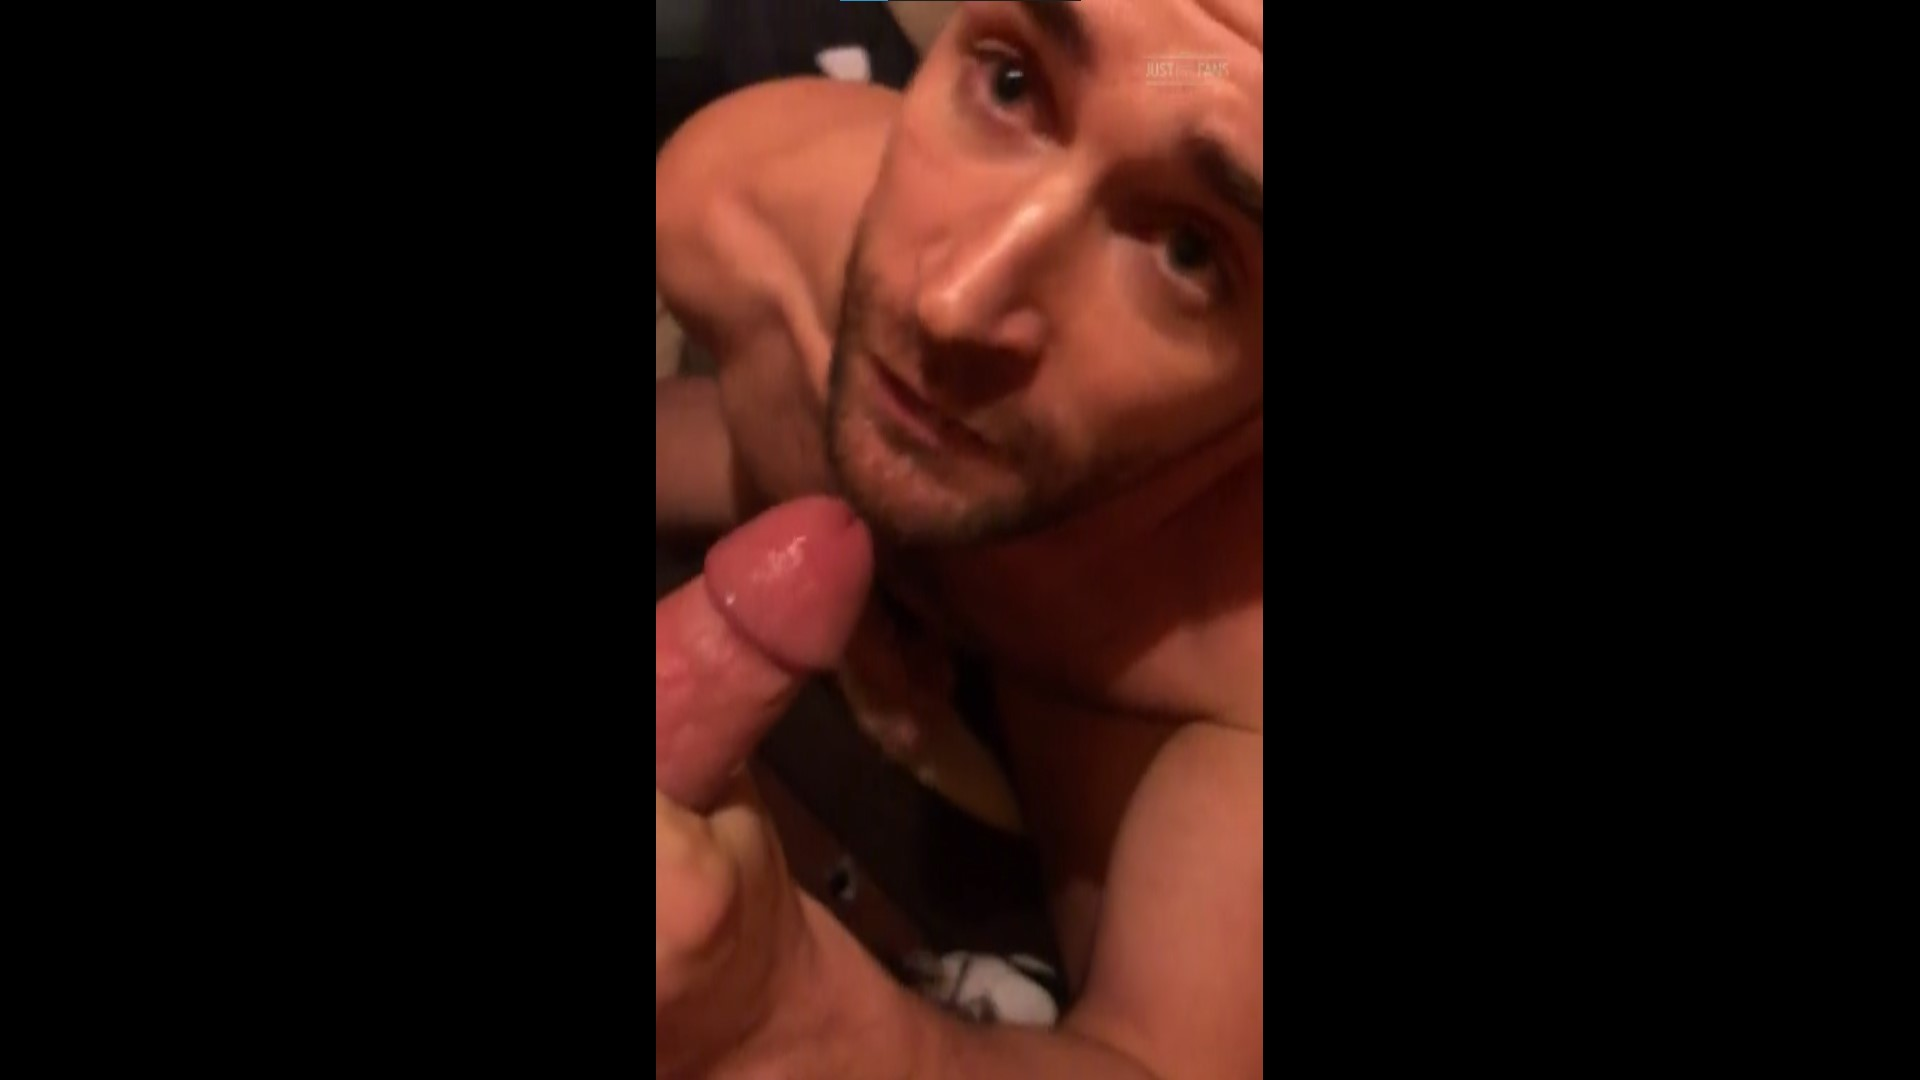 Giving a guy a blowjob and getting a mouthful of cum - Woody Fox